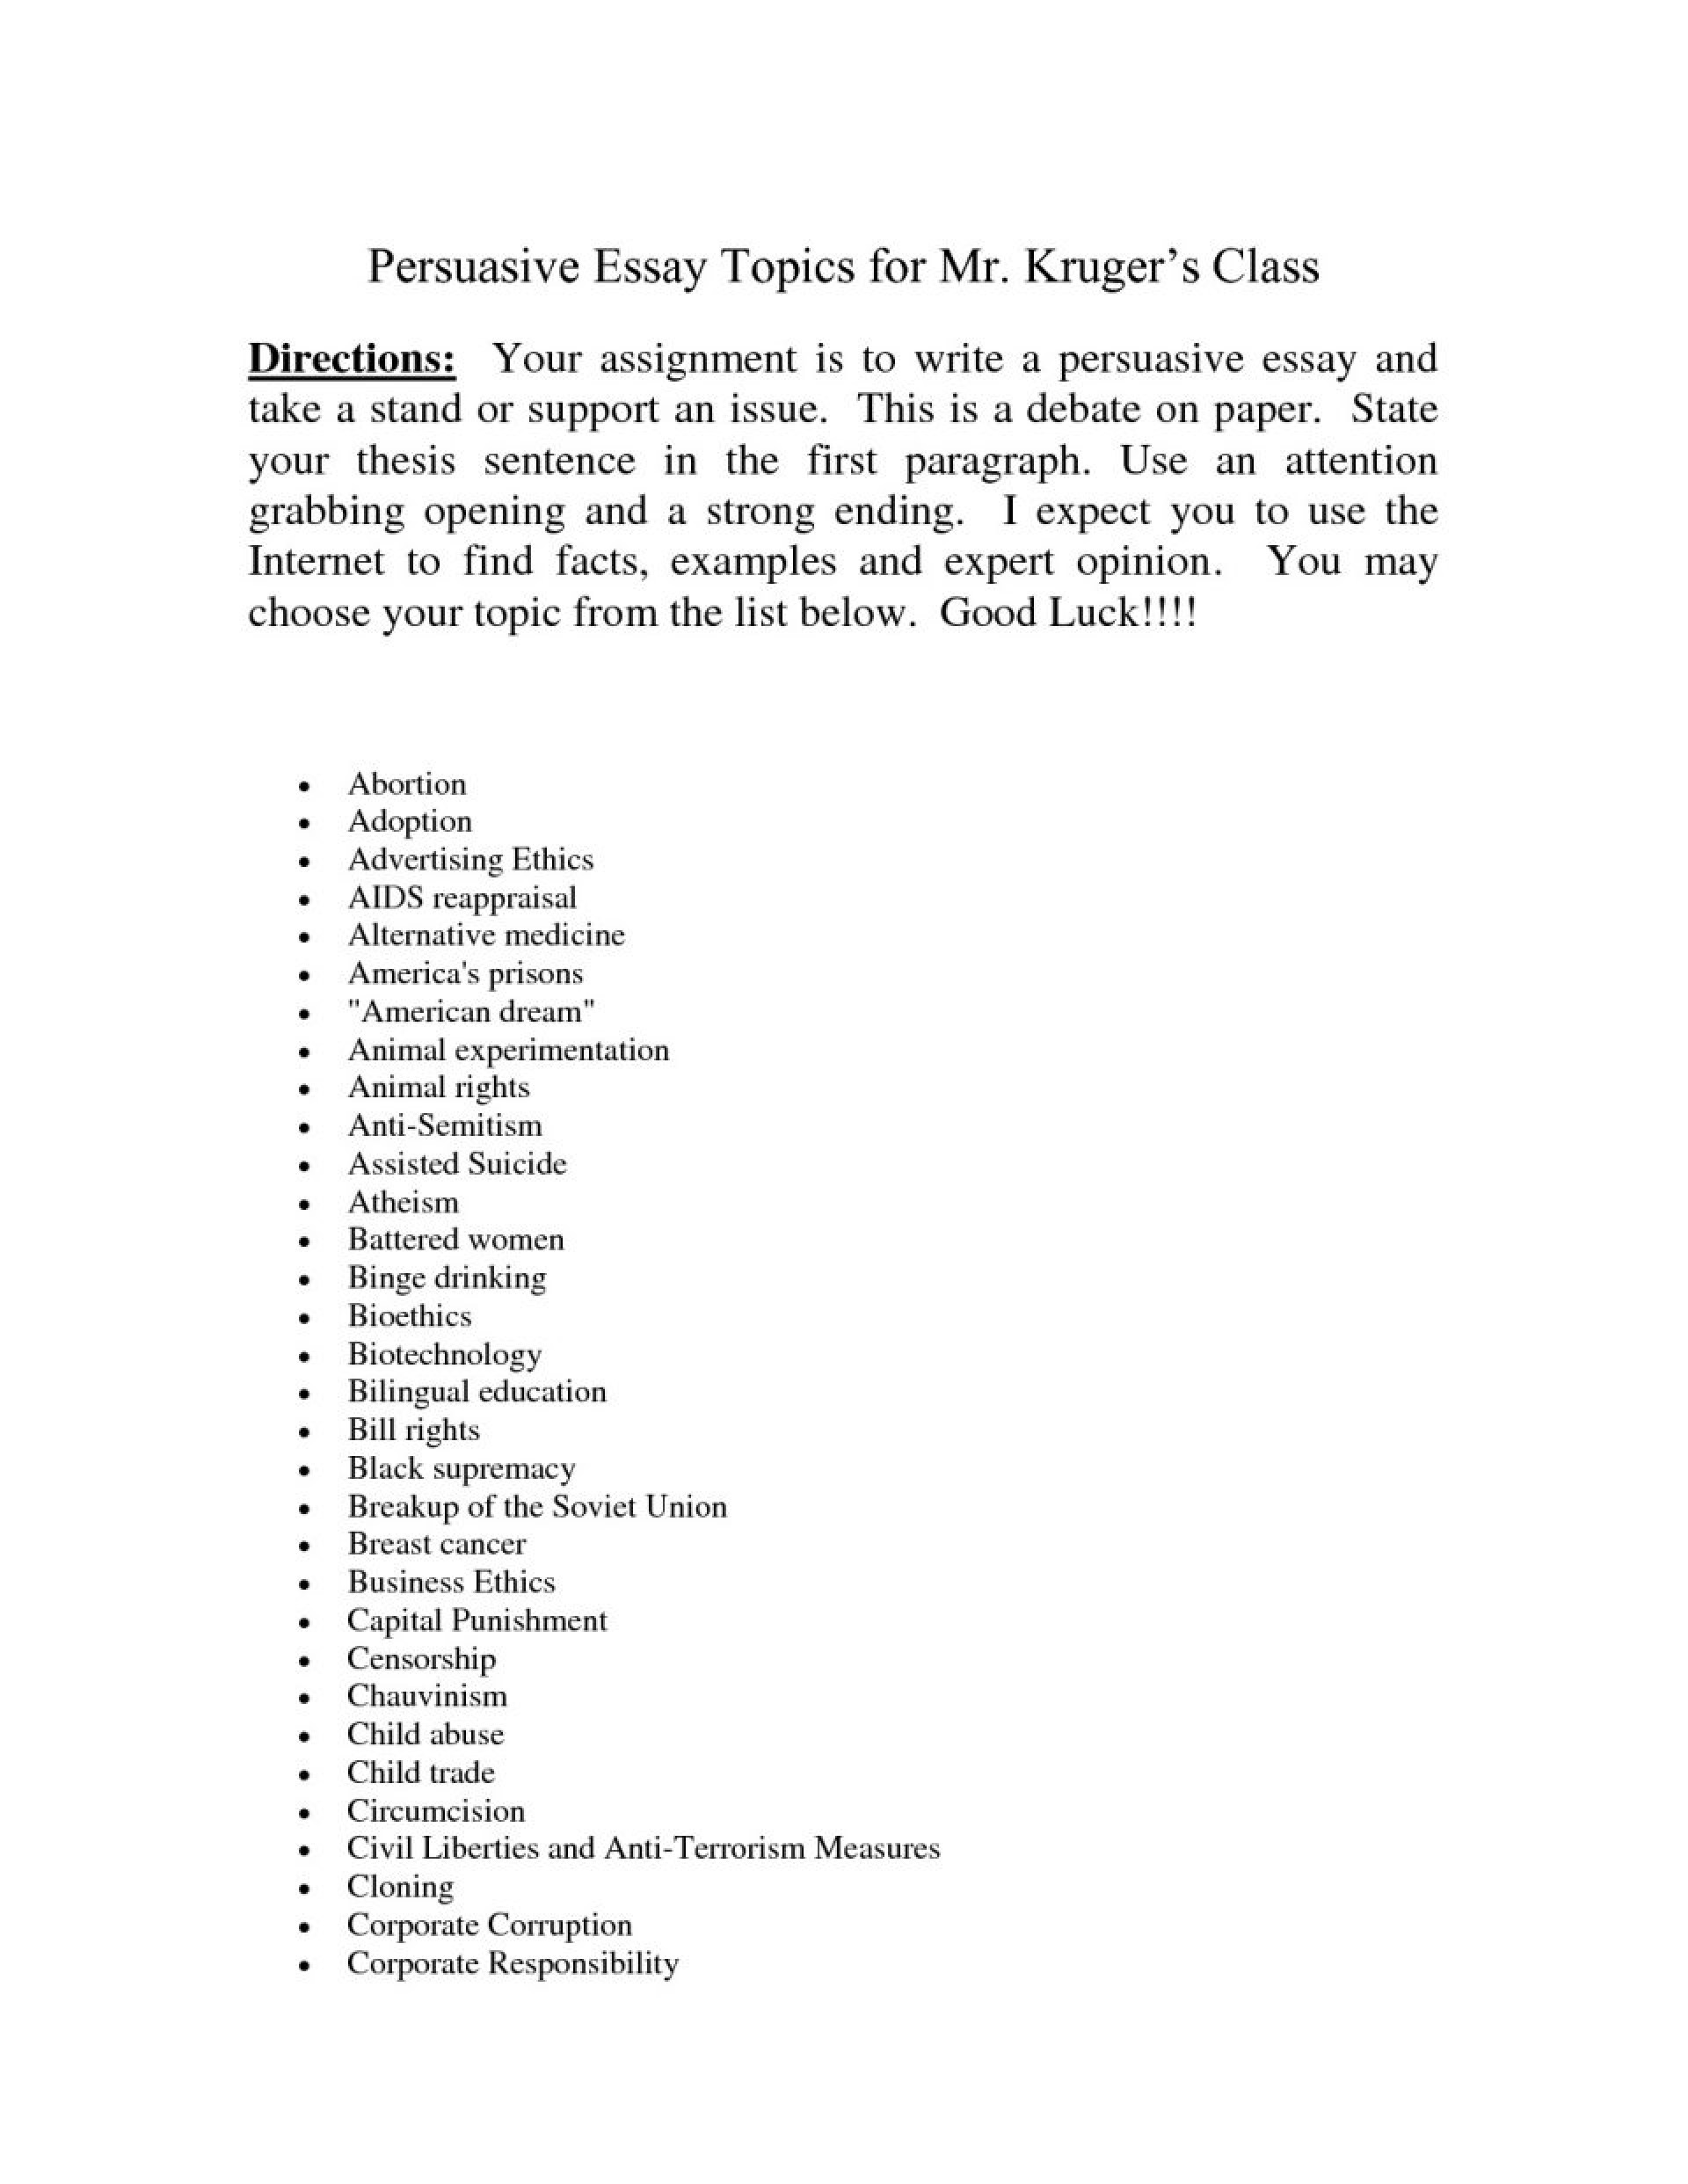 012 Research Paper Topics To Write On Topic For Essay Barca Fontanacountryinn Within Good Persuasive Narrative Abo Easy About Personal Descriptive Fearsome A Fun History 1920